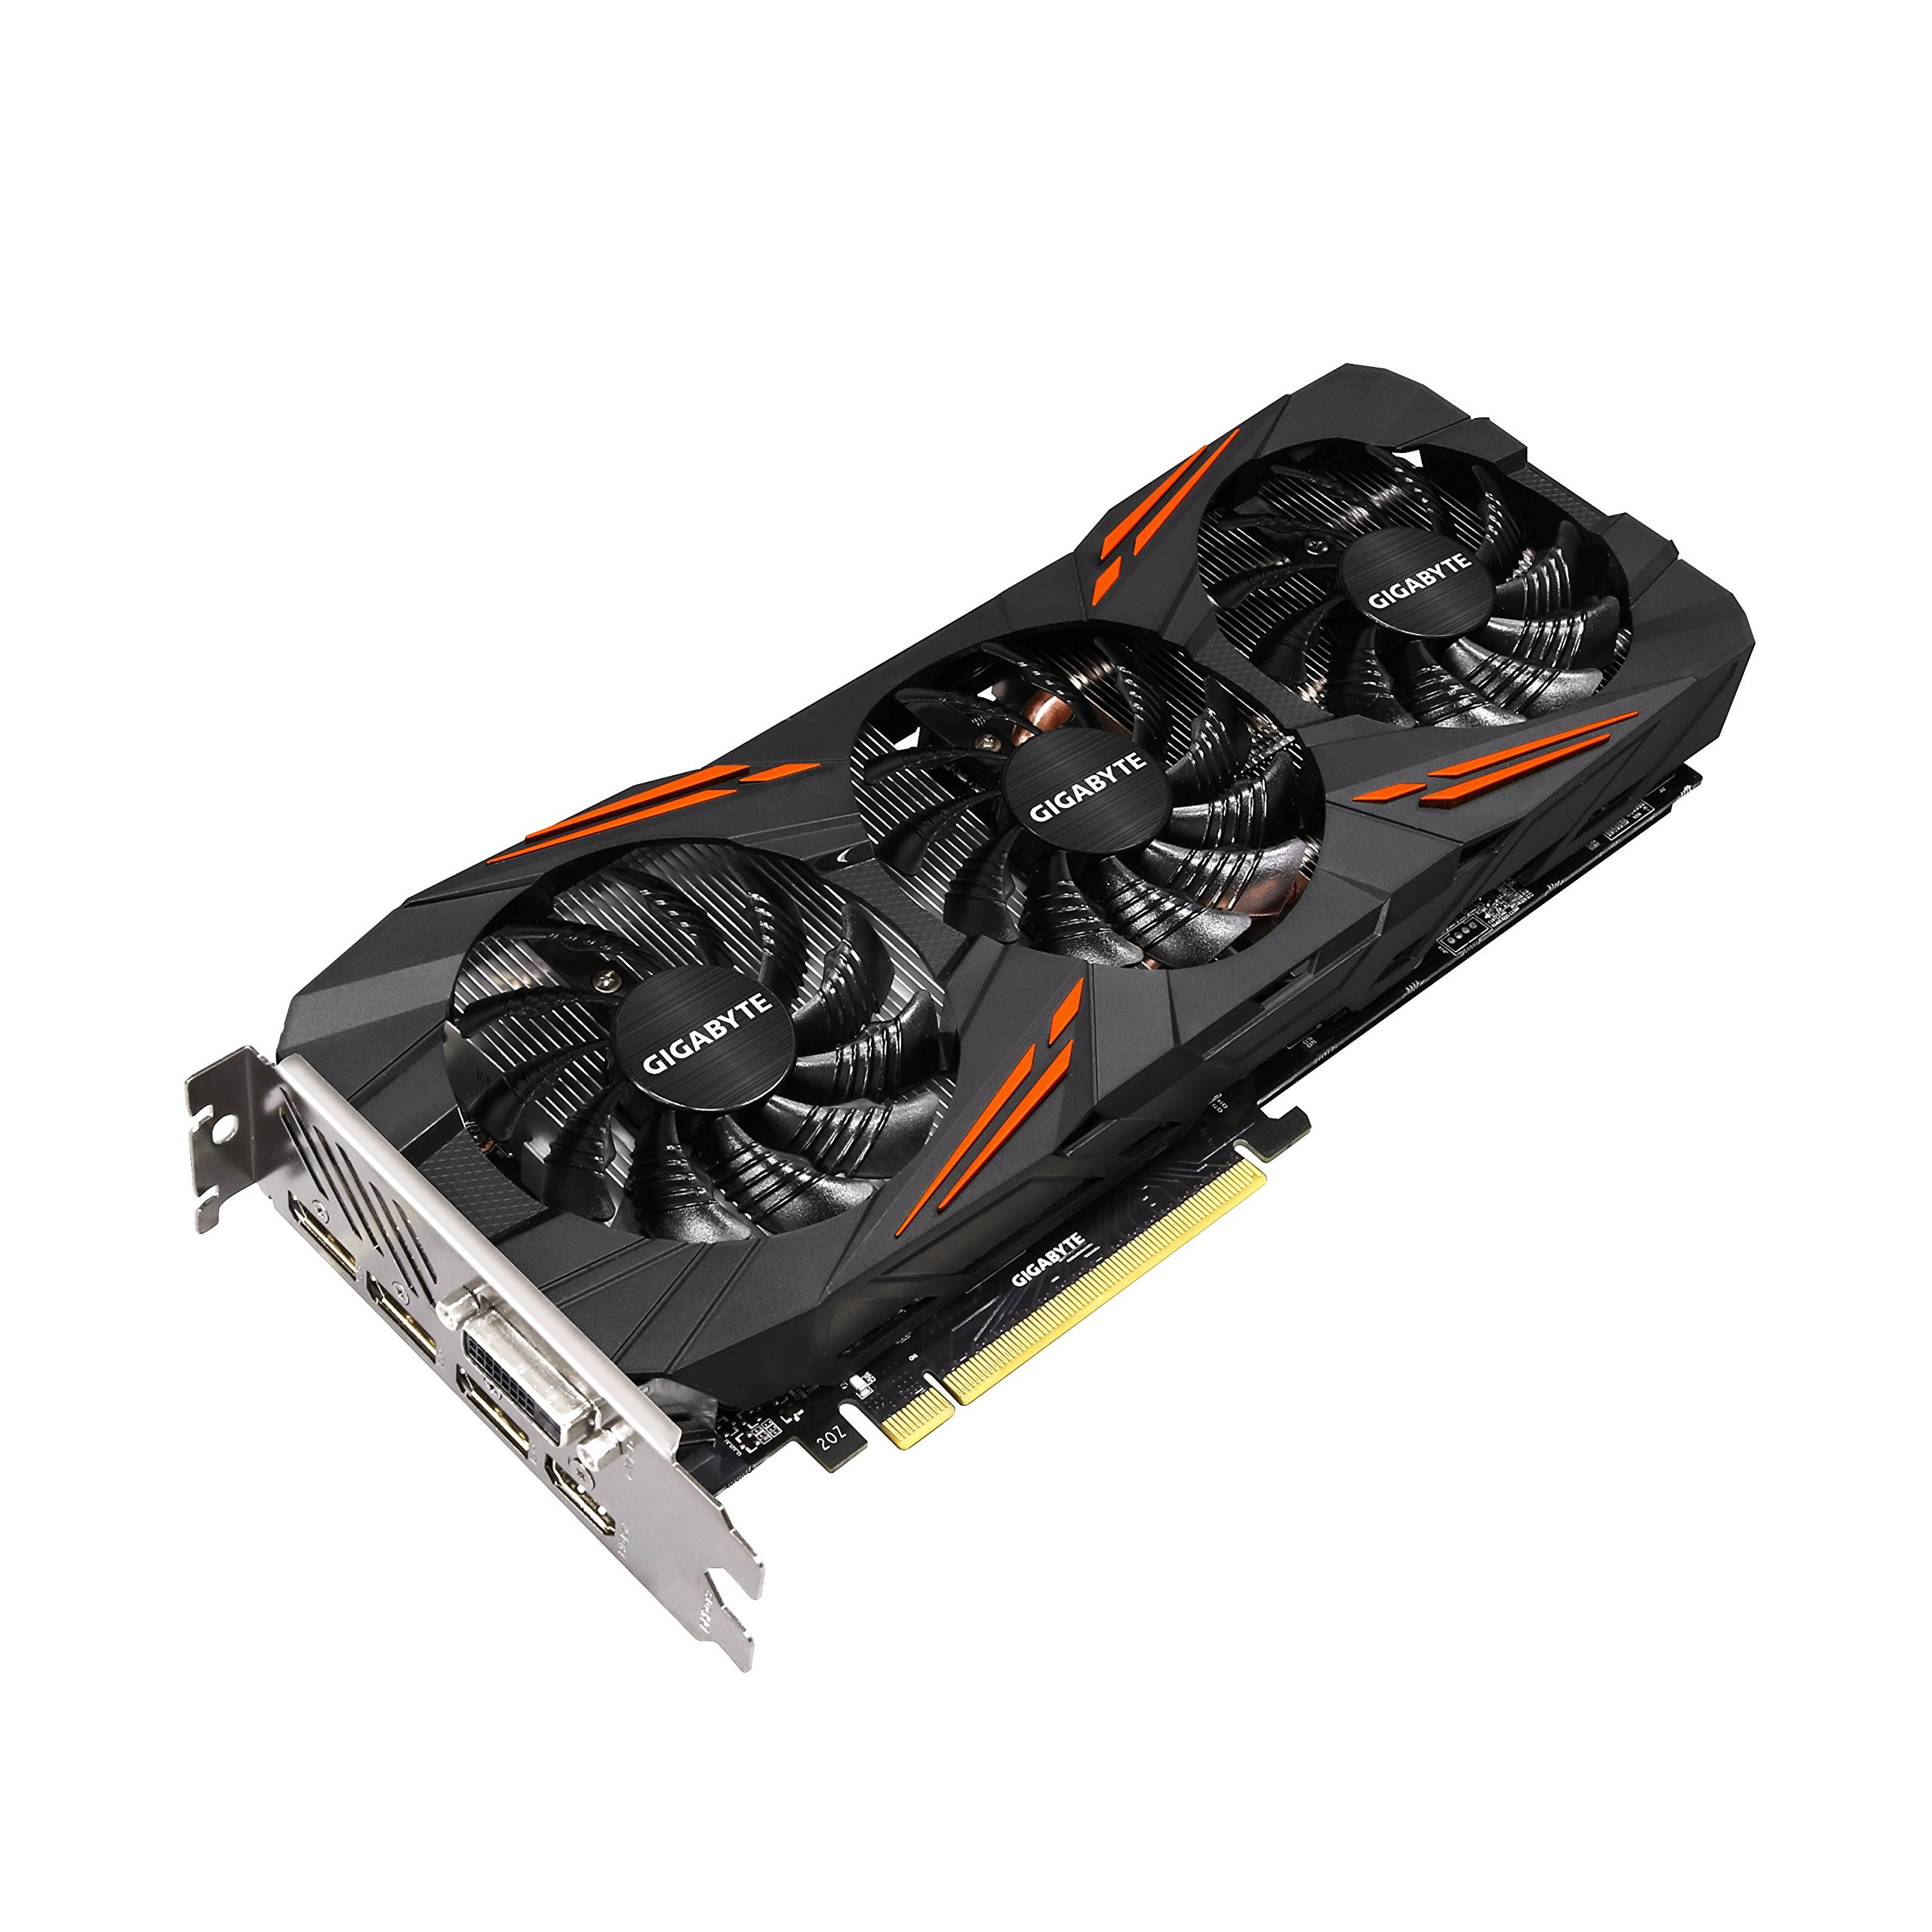 GIGABYTE GeForce GTX 1070 Ti GAMING 8G Graphics card by Gigabyte (Image #2)